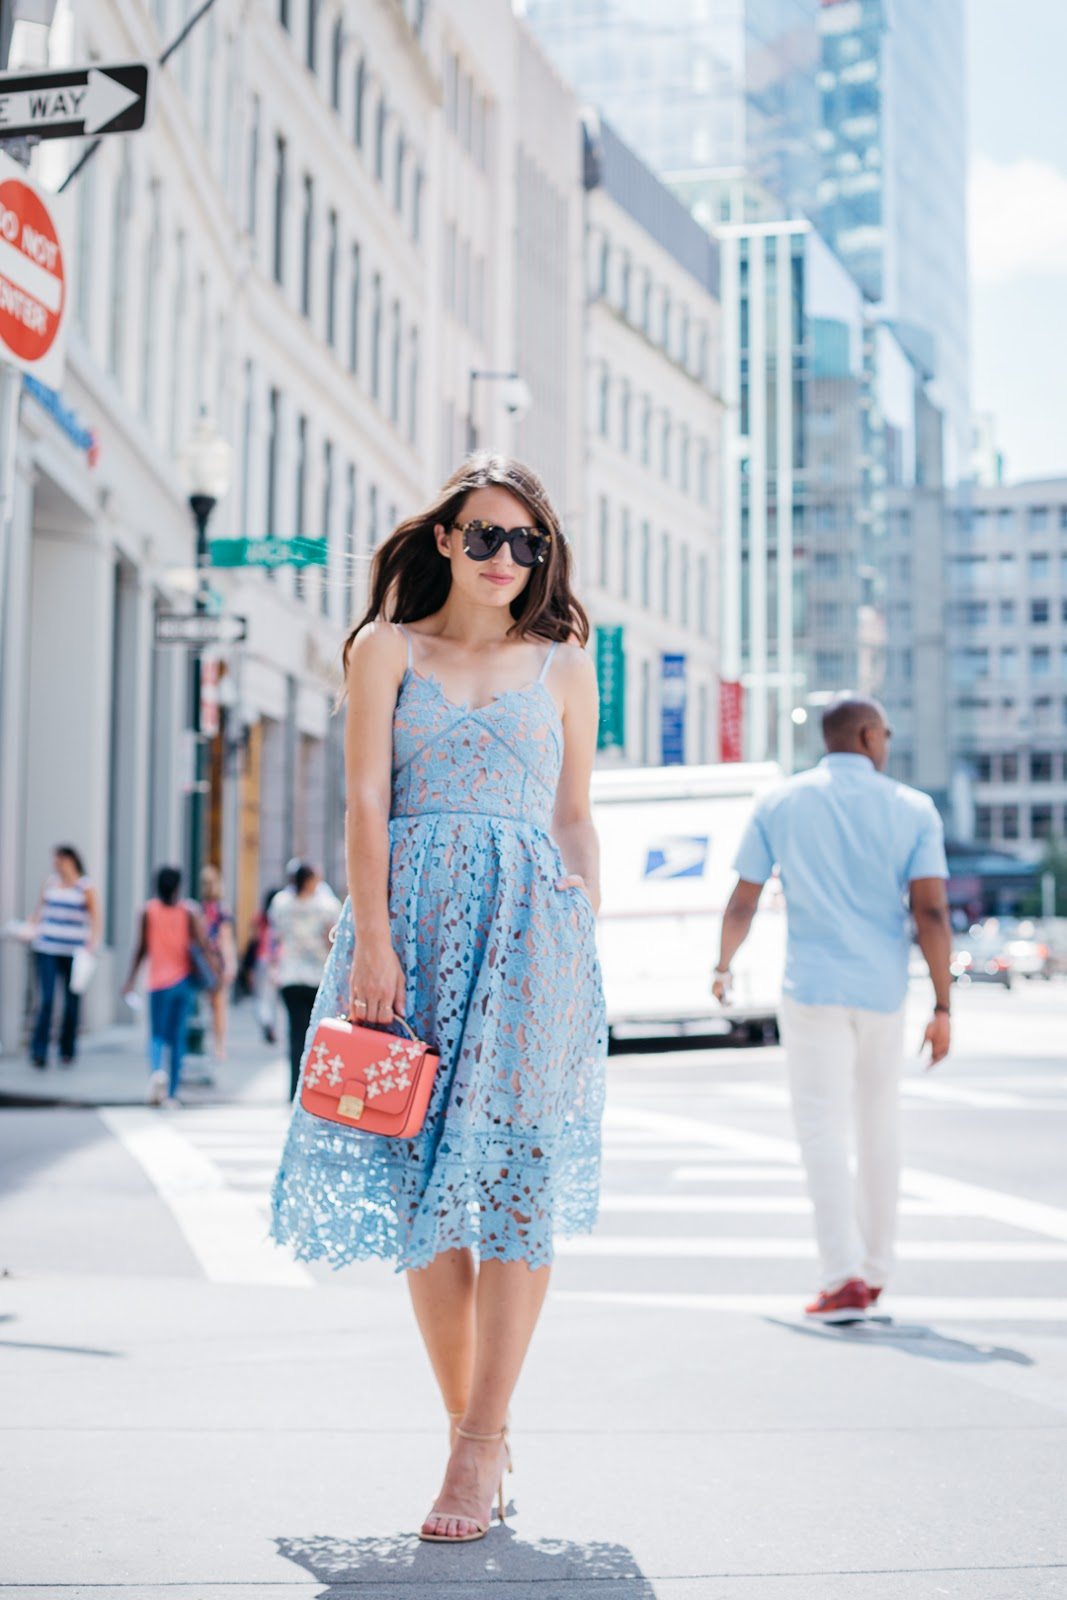 Less than $50 this feminine lace midi dress is proof that looking chic doesn't have to cost a lot